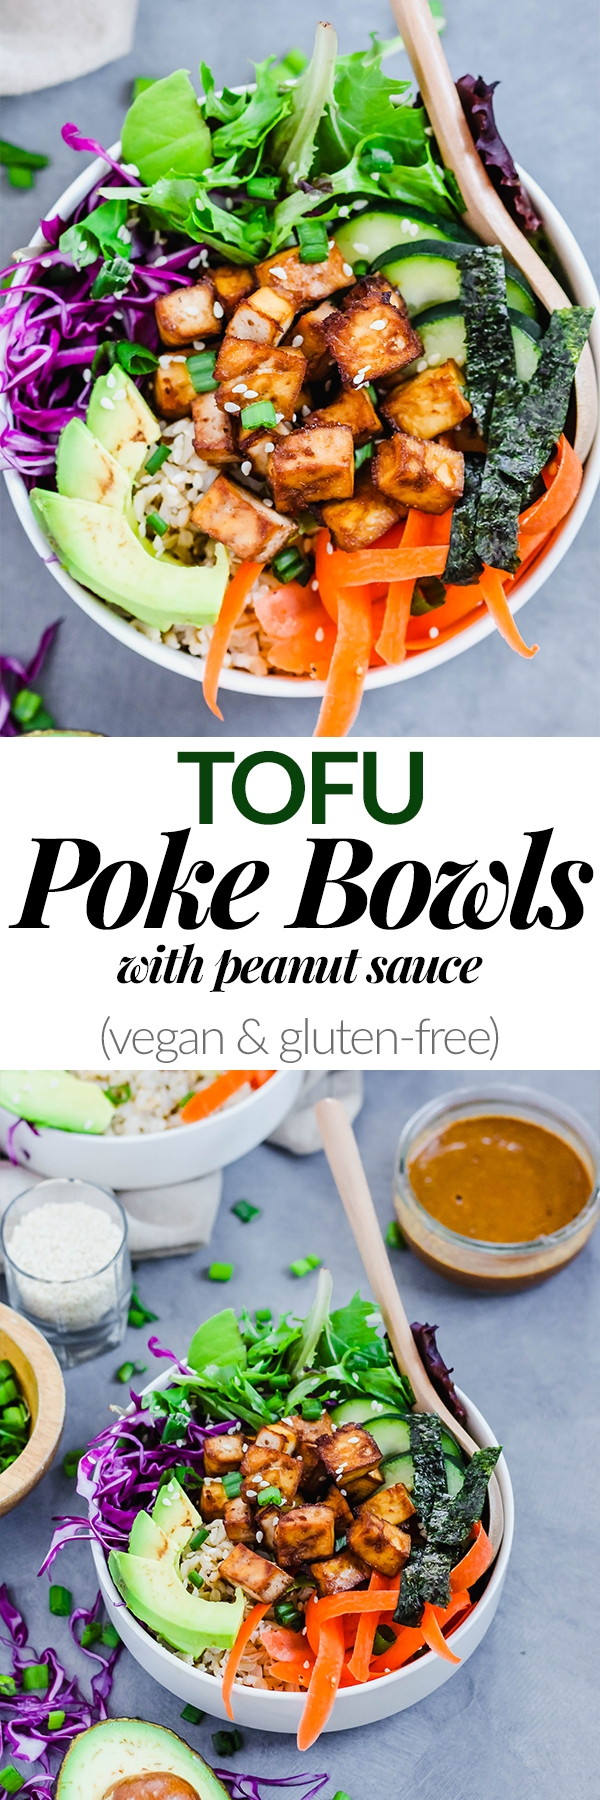 Throw together this Vegan Poke Bowl for adelicious, wholesome meal done in under an hour! It's full of savory tofu, crunchy vegetables and creamy peanut sauce. Great for meal prep! (gluten-free)